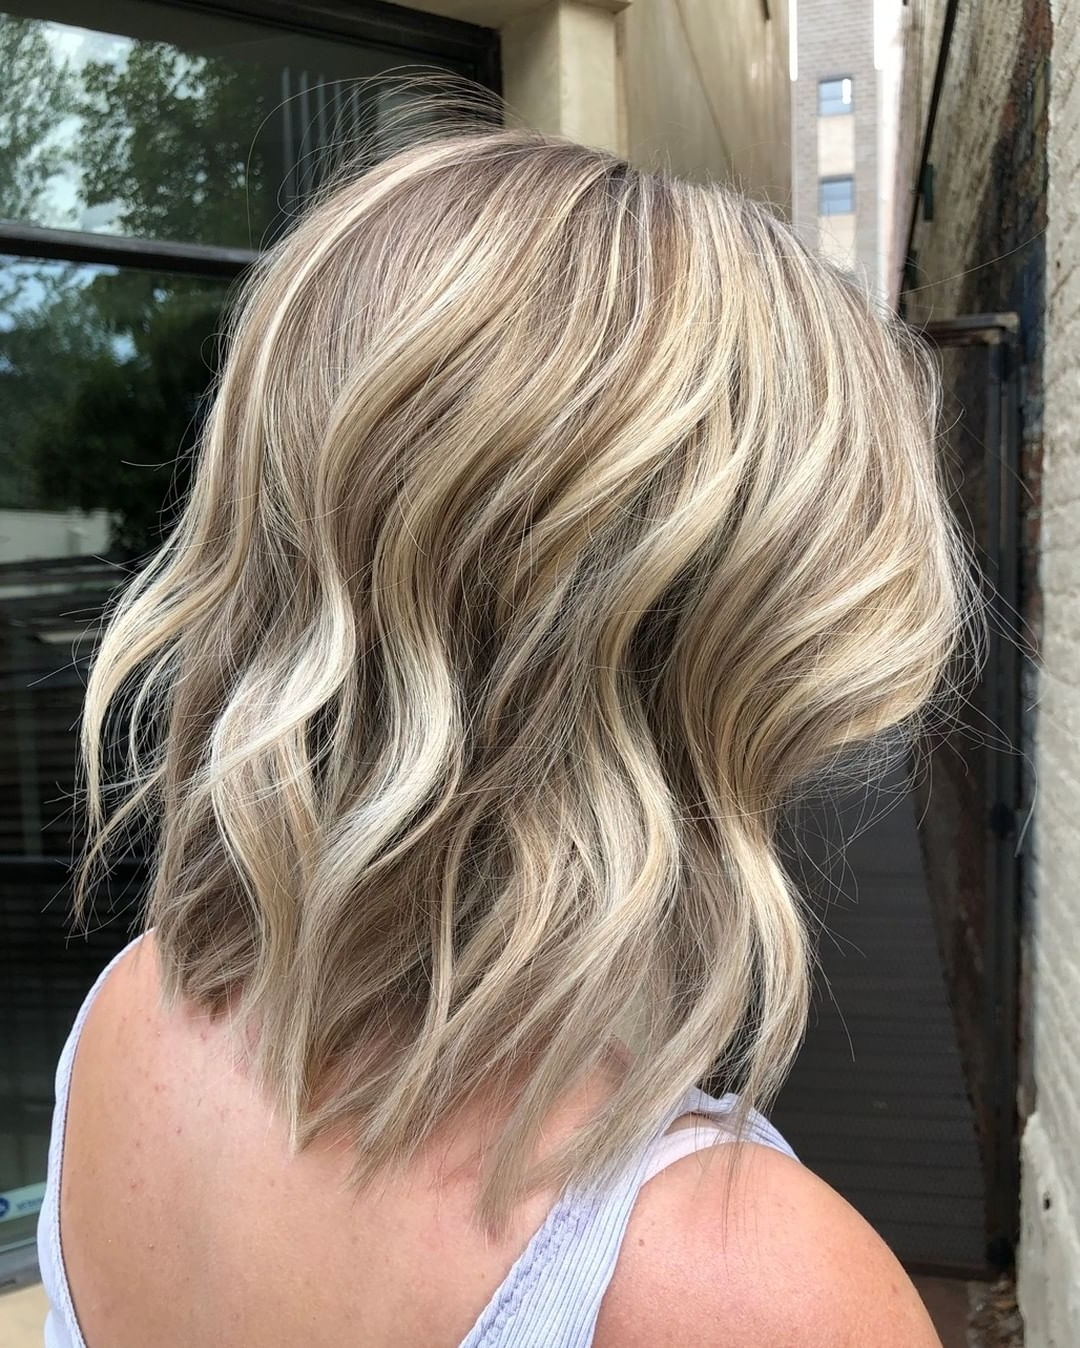 10 Low Maintenance Medium Length Hairstyles 2021 Best 40+ Amazing Low Maintenance Medium Length Hairstyles